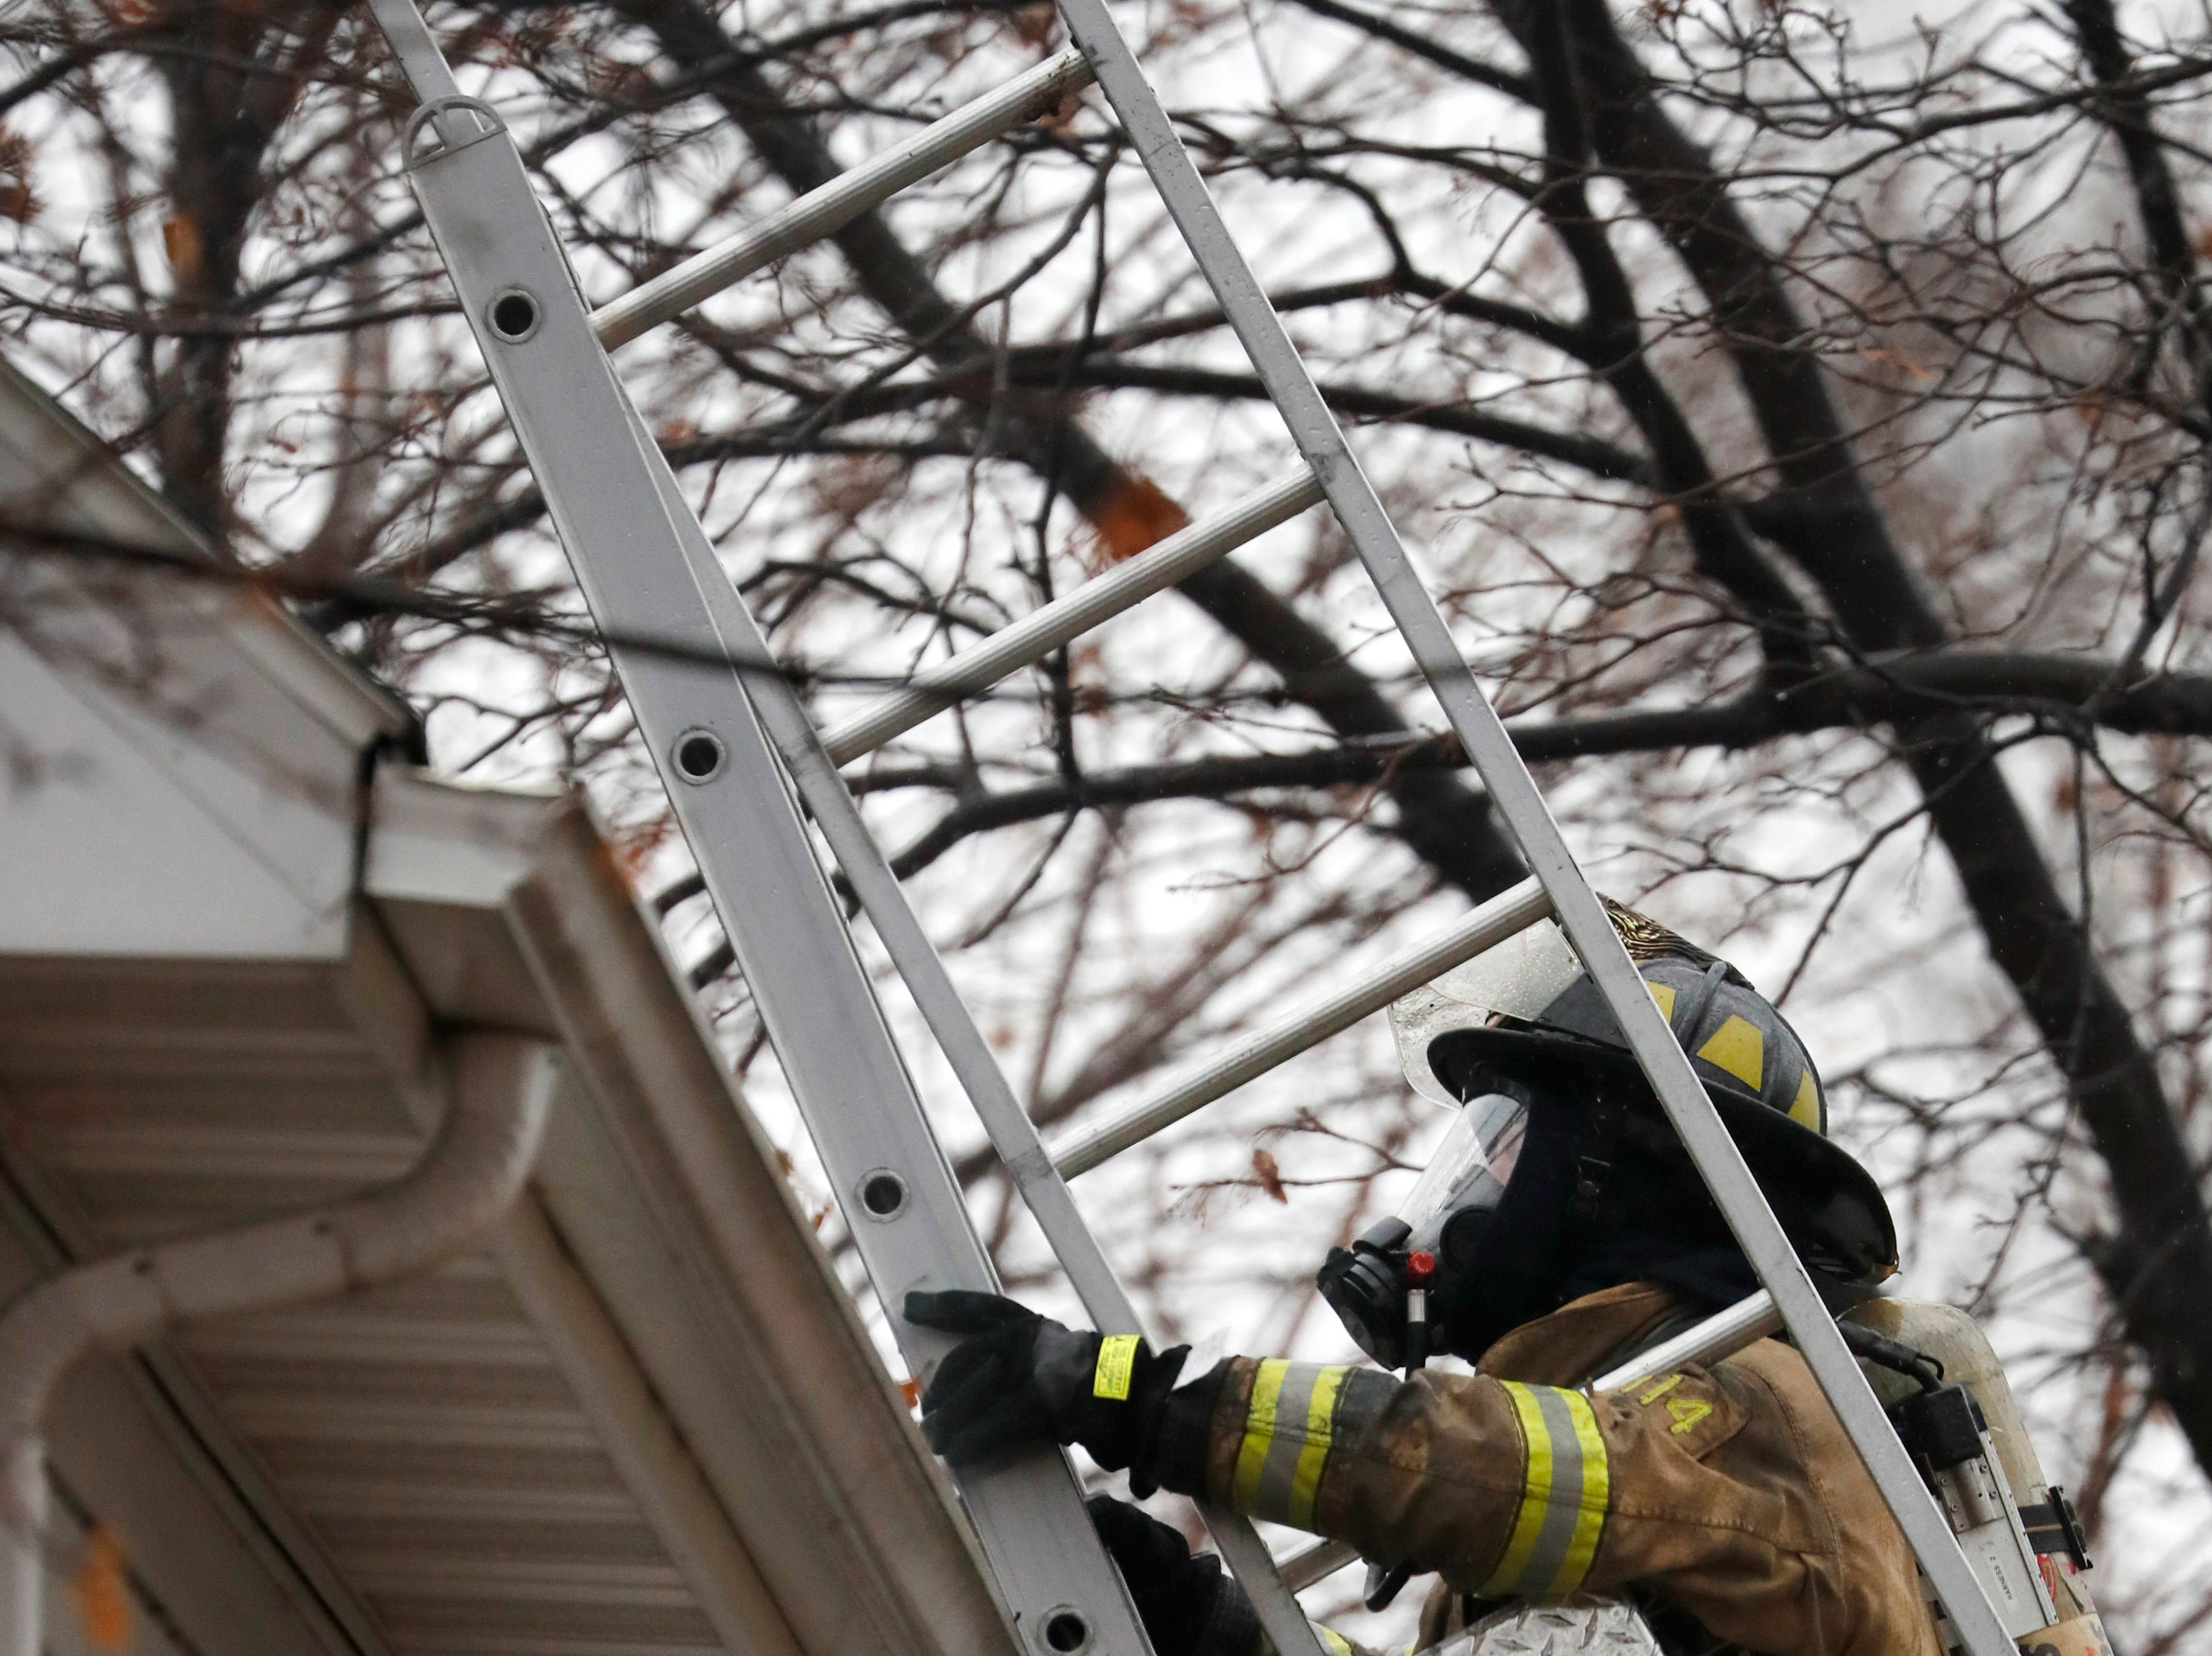 A firefighter works the scene of a structure fire on West 10th Street Thursday, Dec. 27, 2018, Kaukauna, Wis.Danny Damiani/USA TODAY NETWORK-Wisconsin